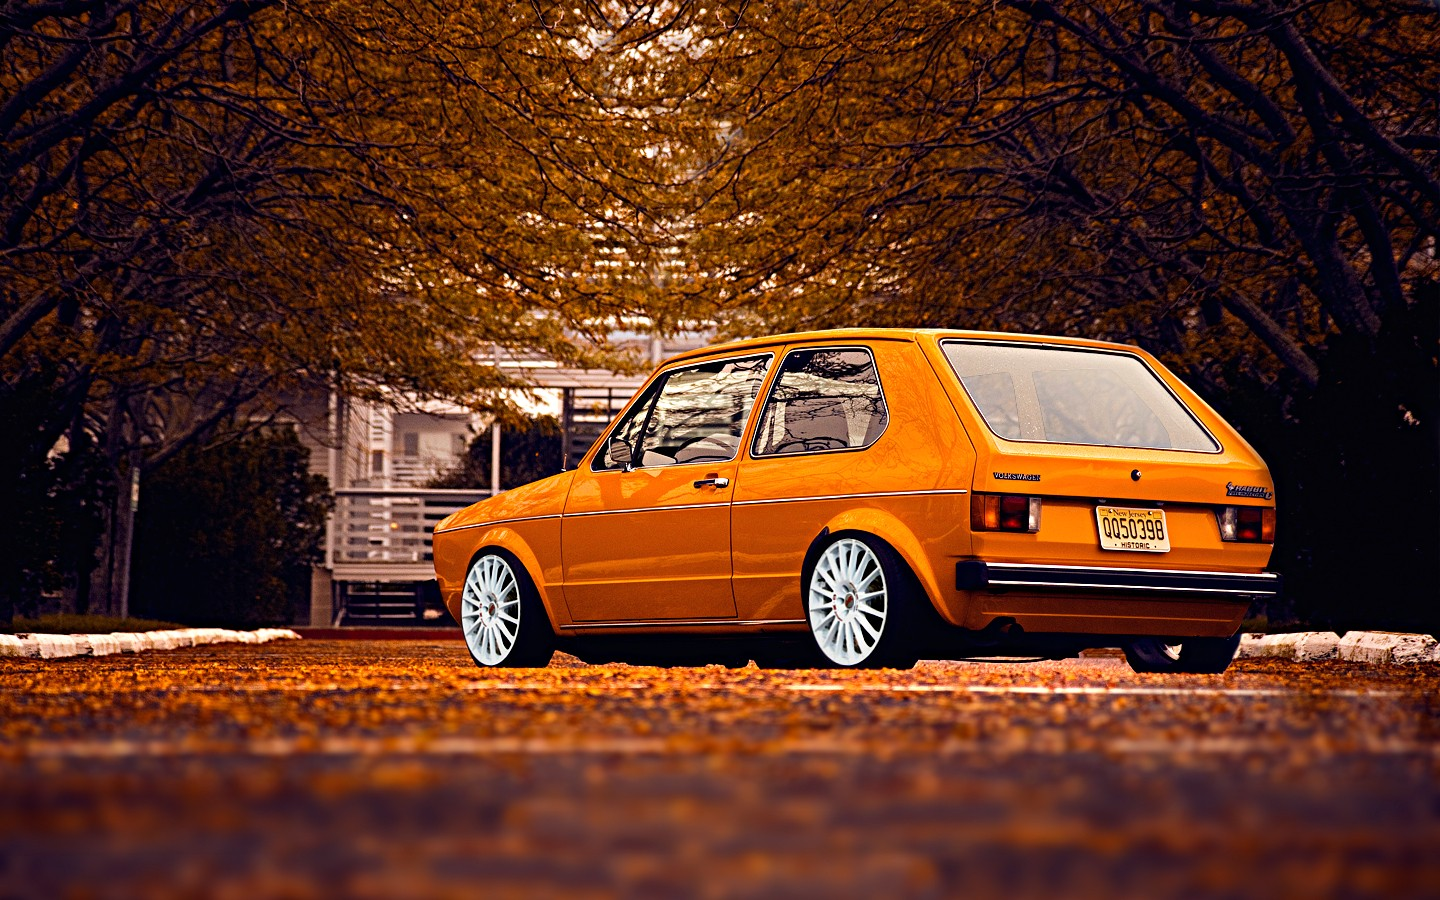 Golf Vw Wallpaper 1440x900 Golf Vw Golf Volkswagen Mk1 Golf 1440x900